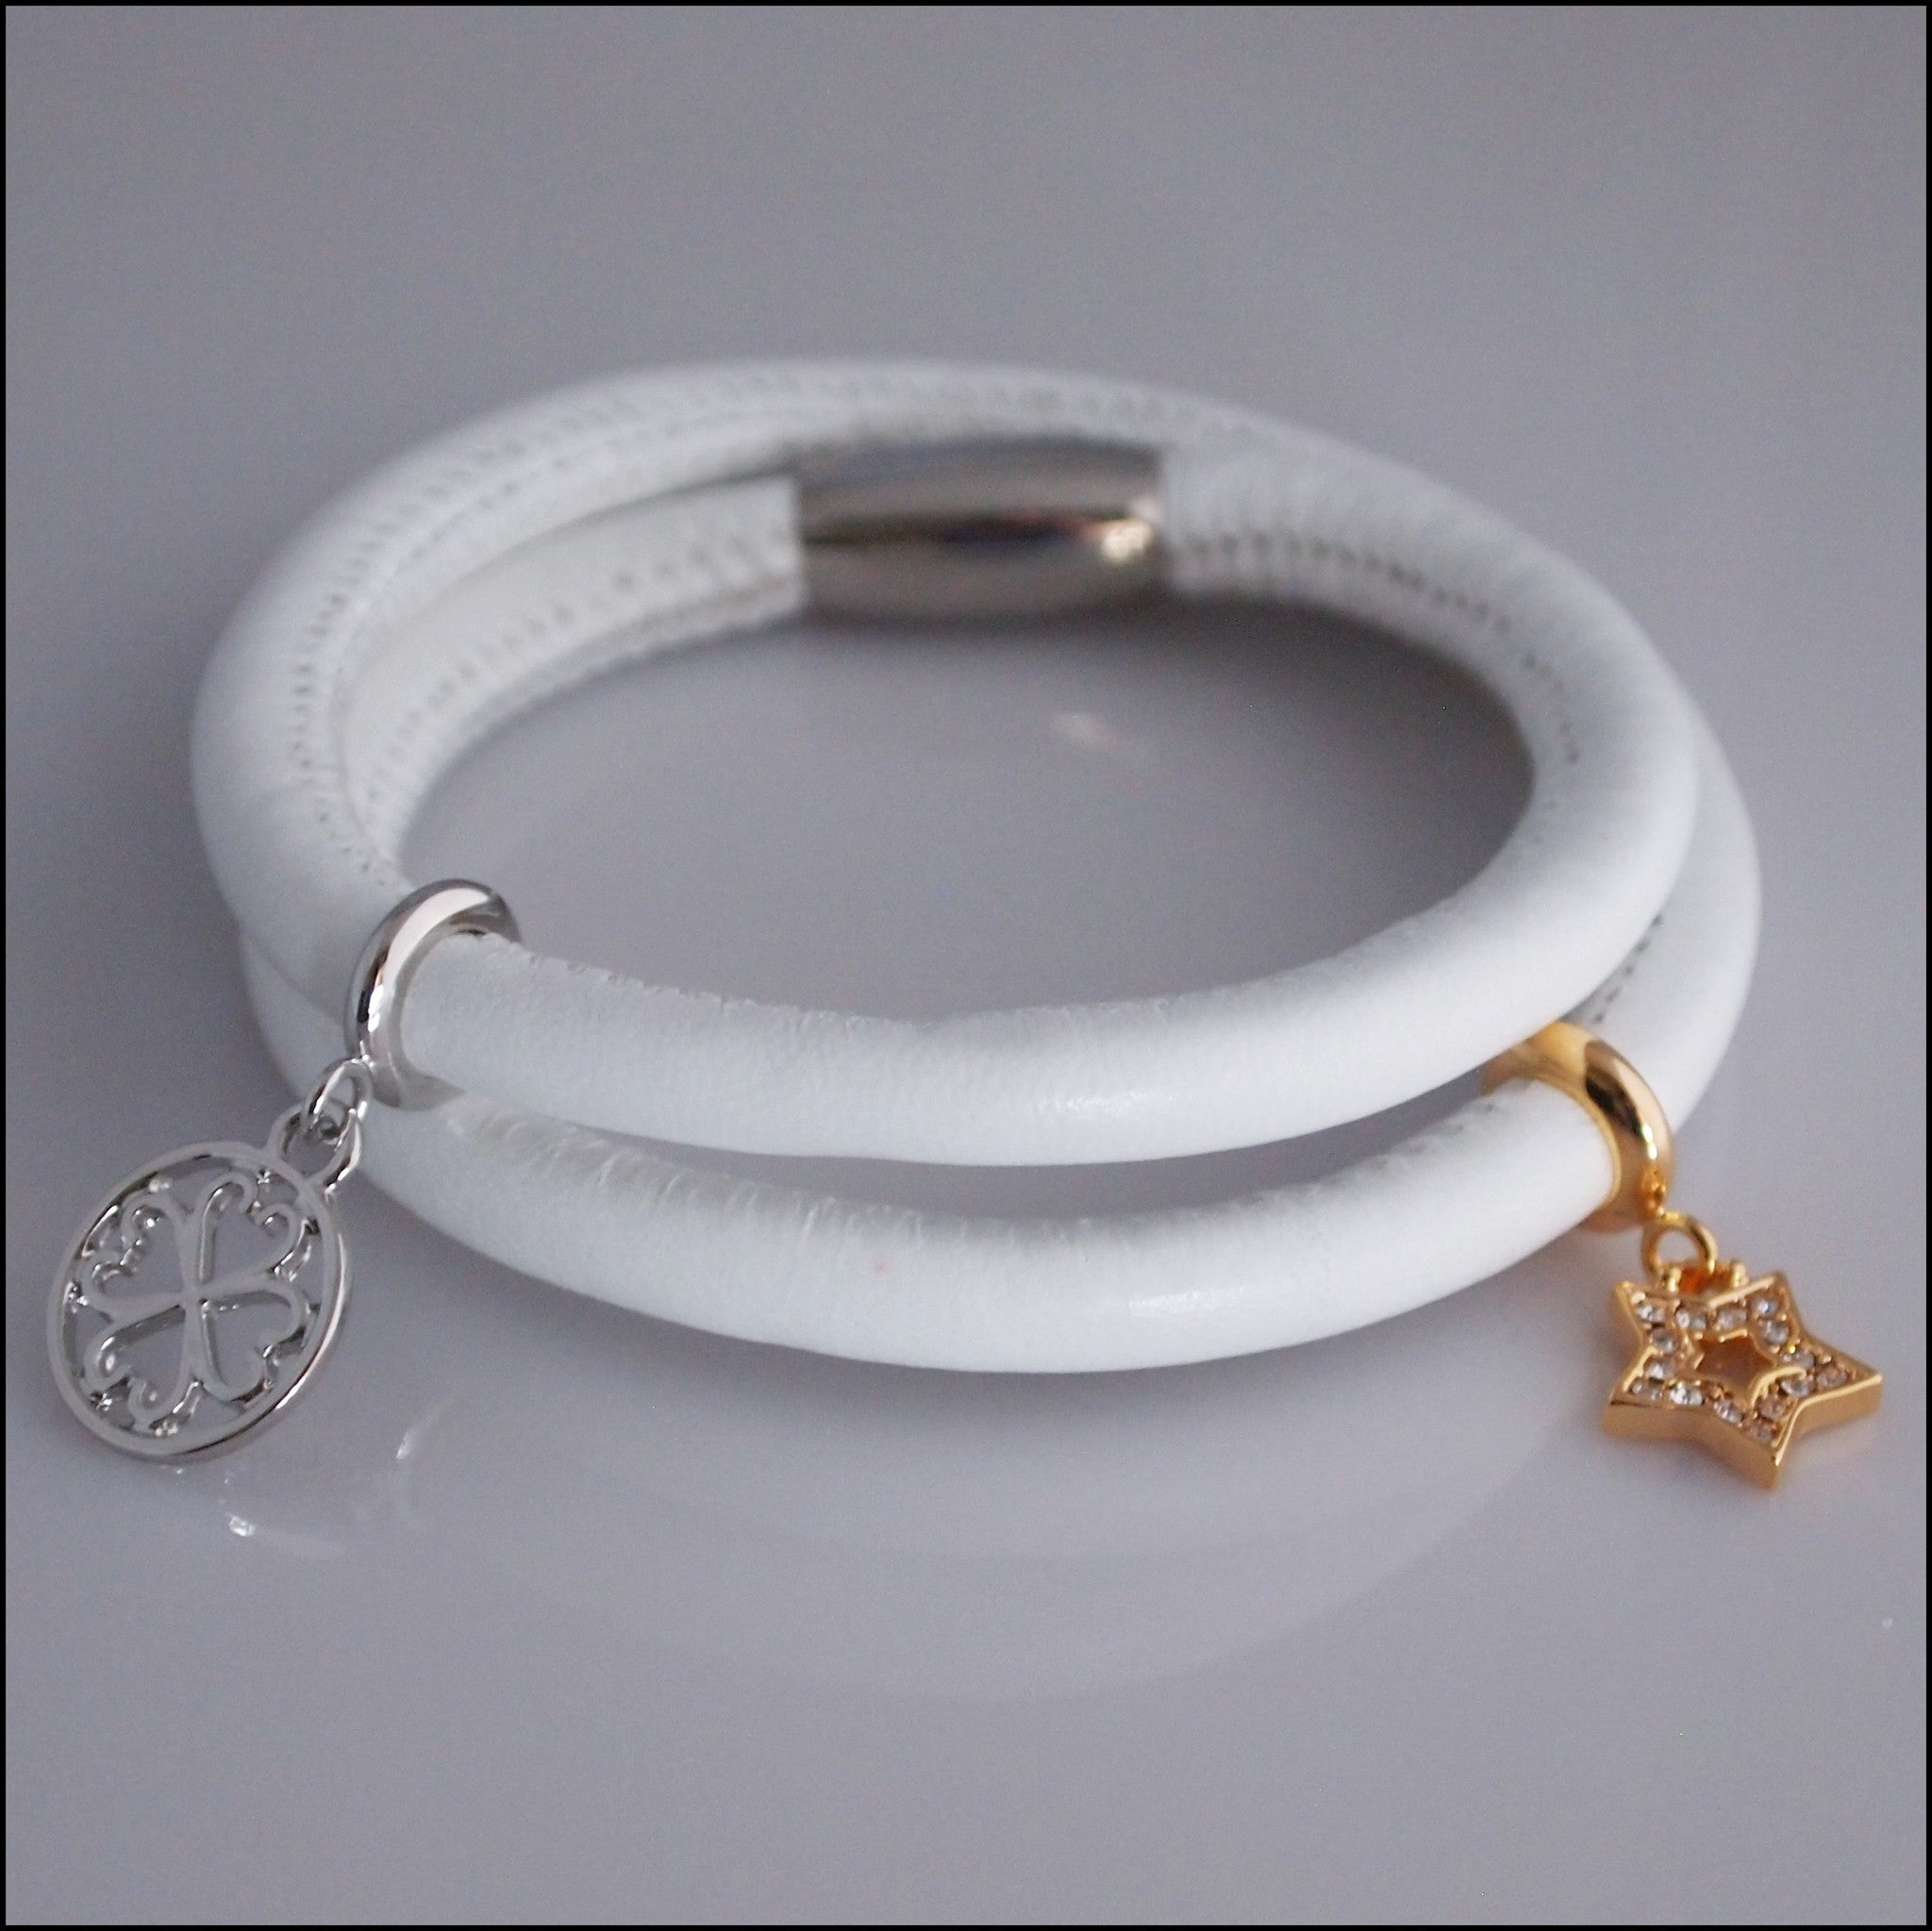 Double Leather Charm Bracelet - White - Find Something Special - 1